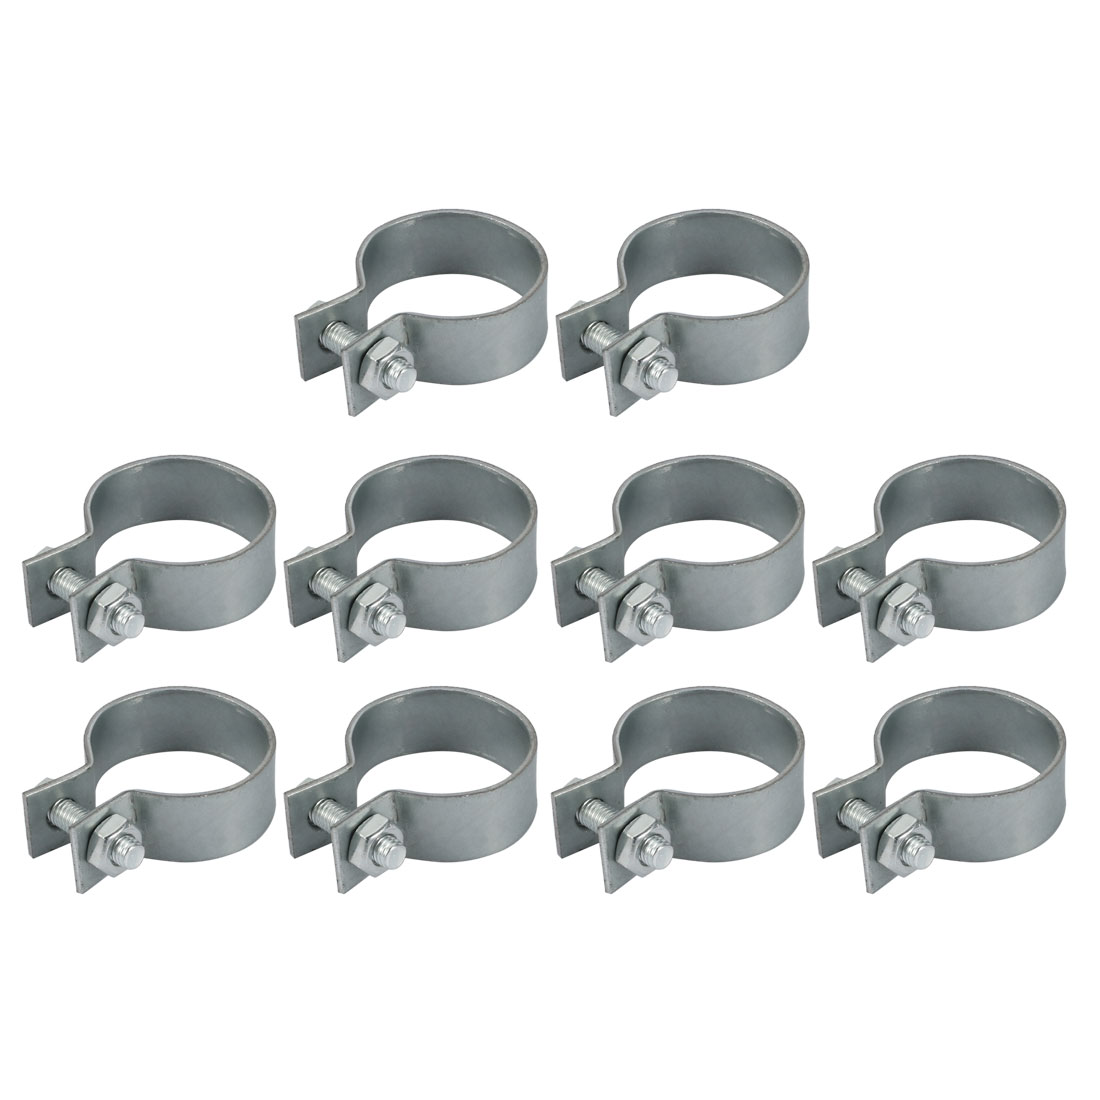 10pcs 40mm Fitting Dia 20mm Width Iron Zinc Plated Pipe Clamp w Screw Nut